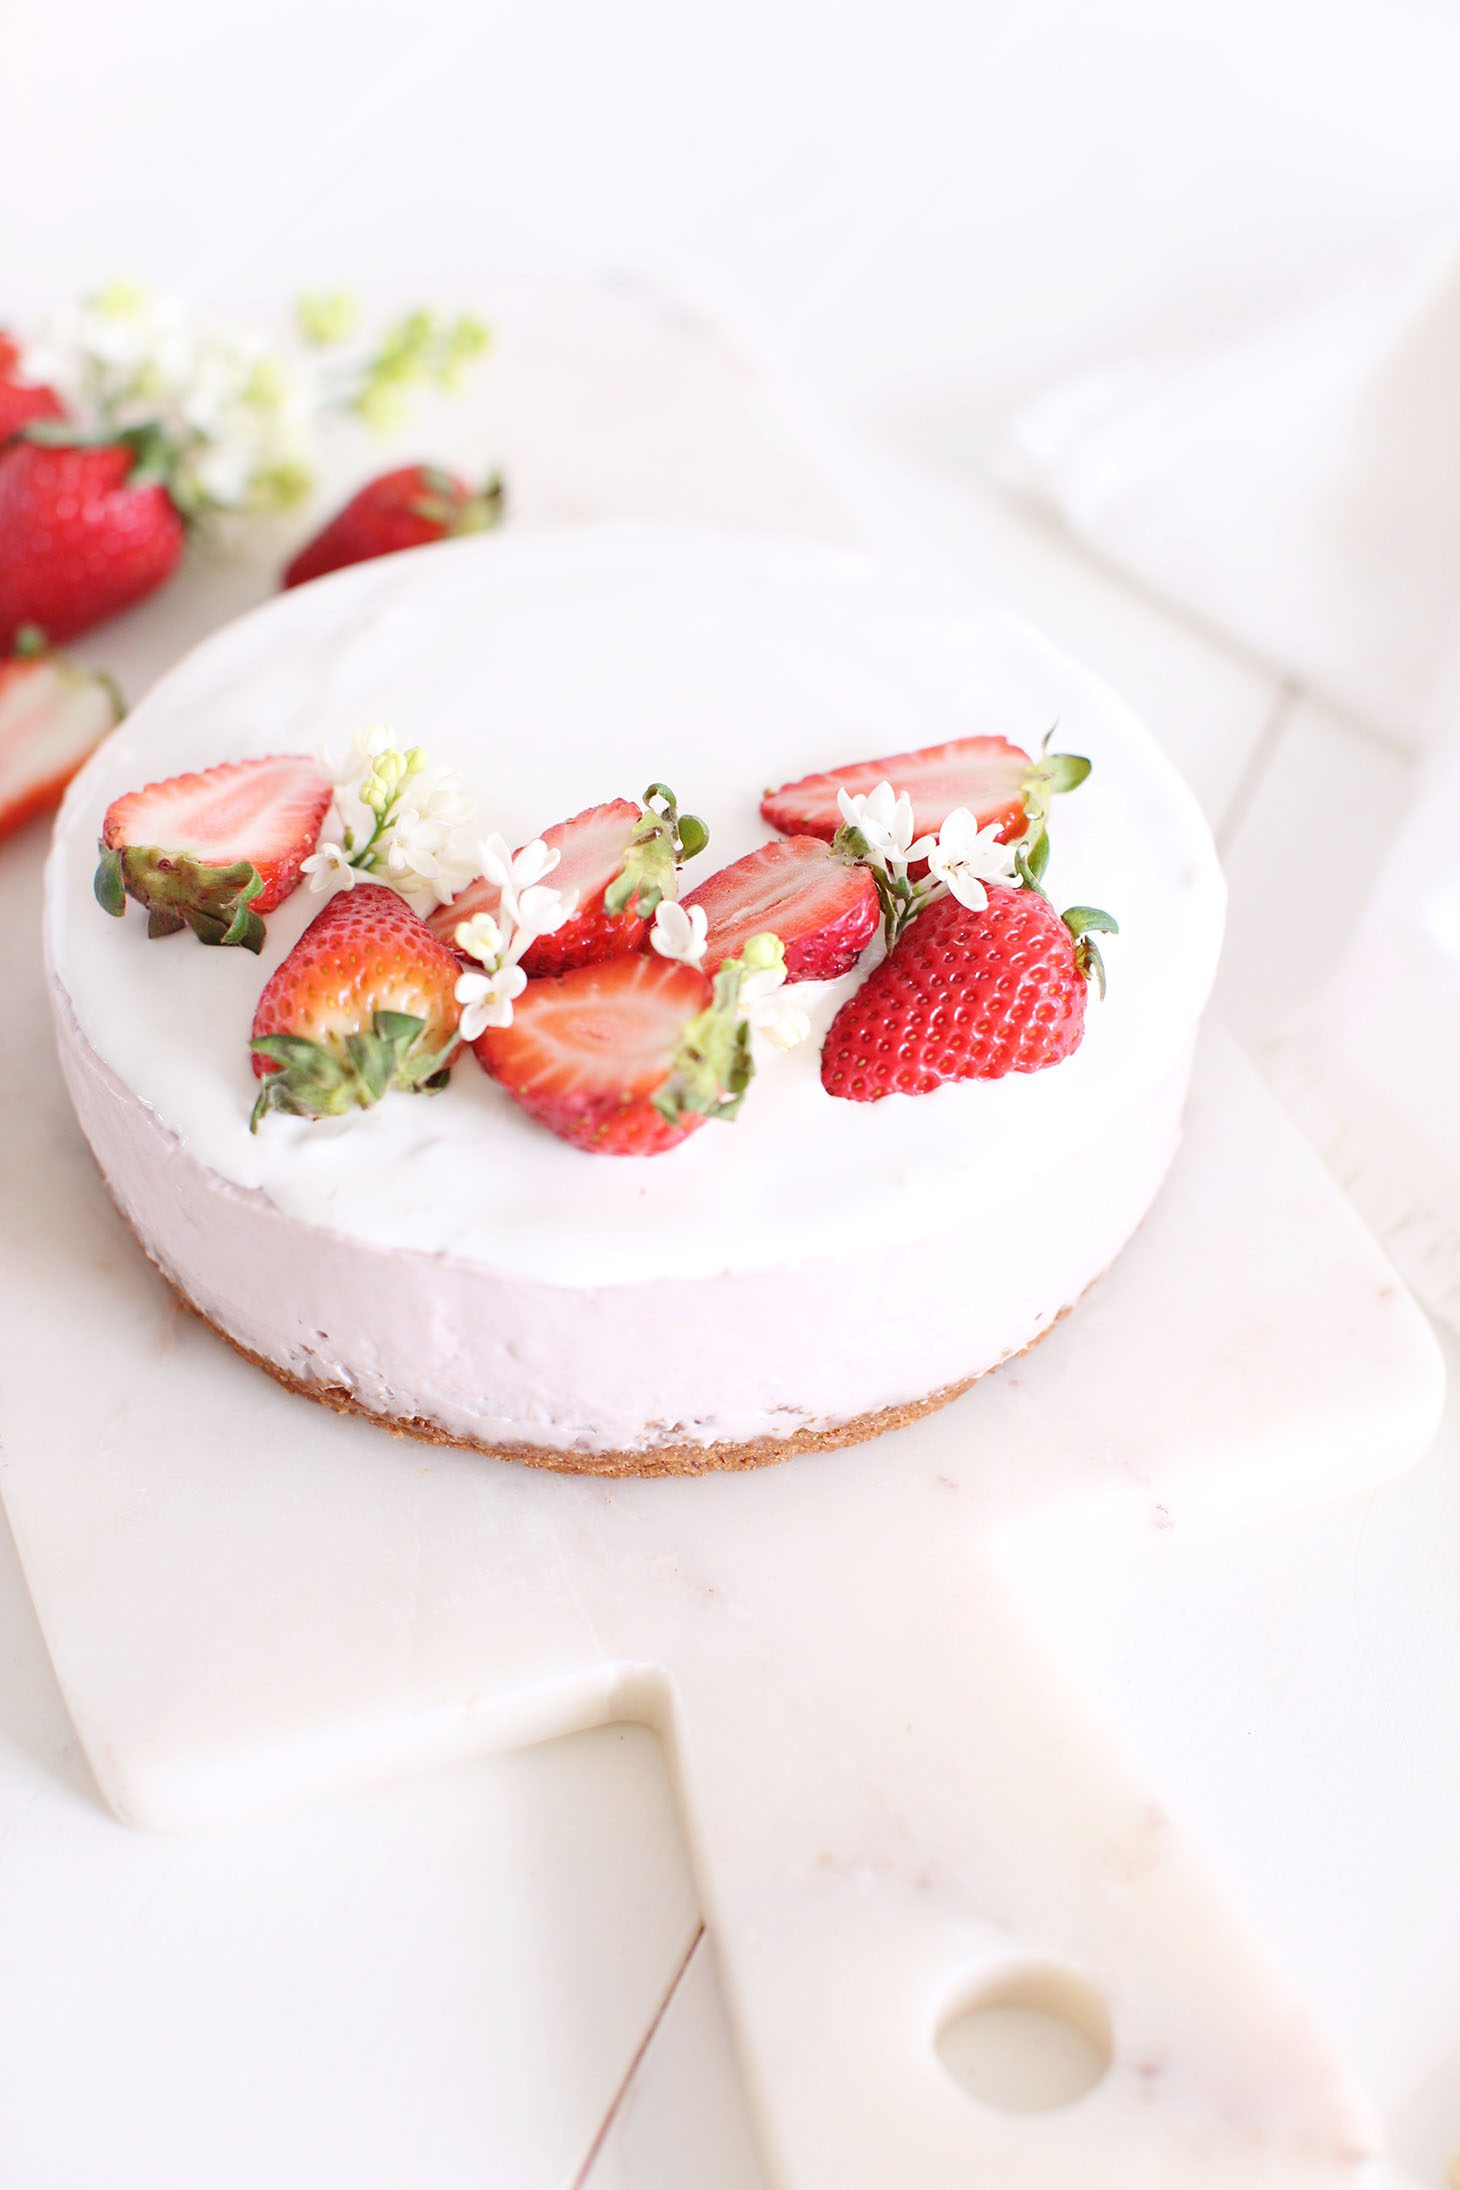 Vegan dessert, Cheesecake decorated with strawberries and small white flowers.